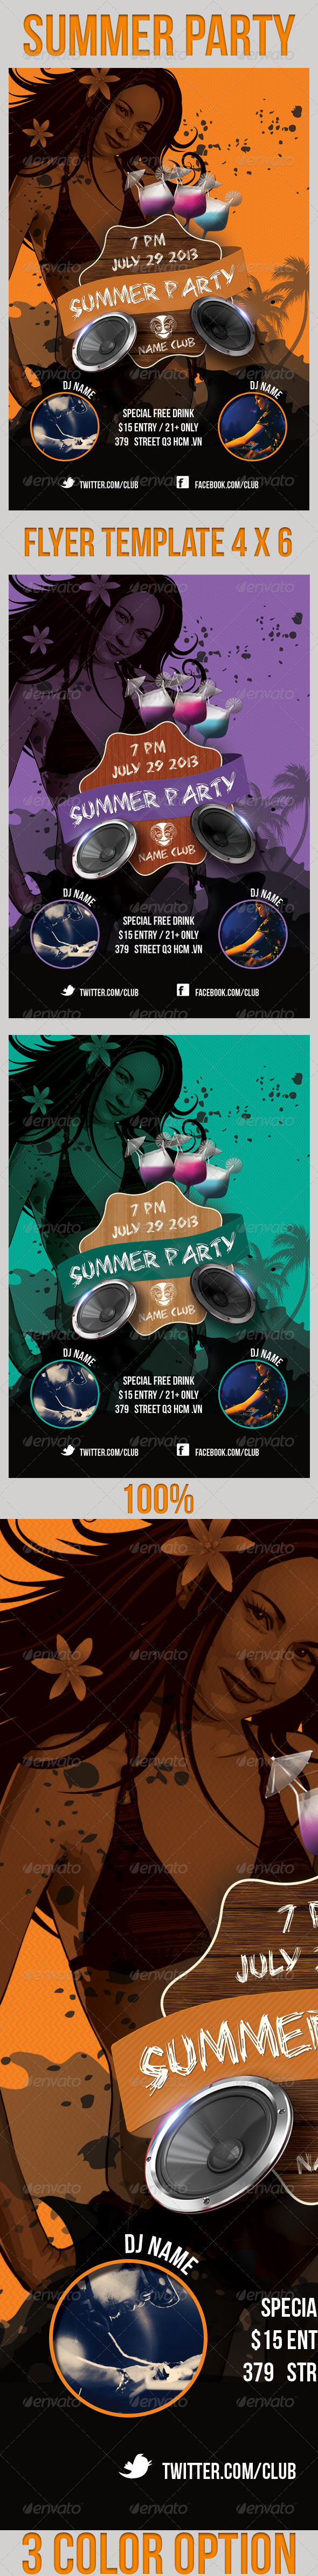 GraphicRiver Summer Party Flyers Template 4621773